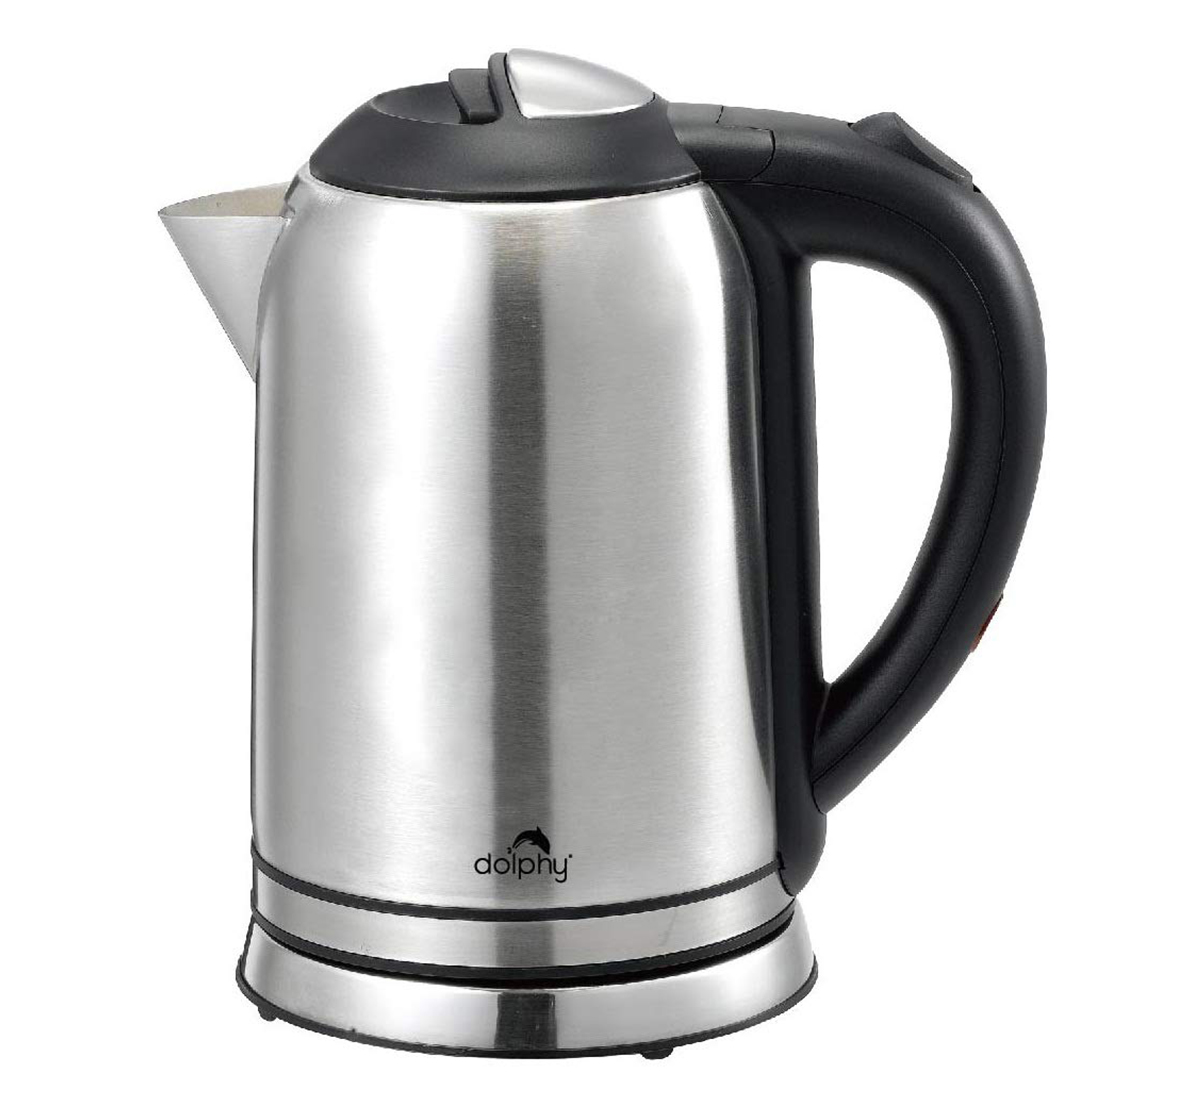 1.0 Litre stainless steel Electric Kettele